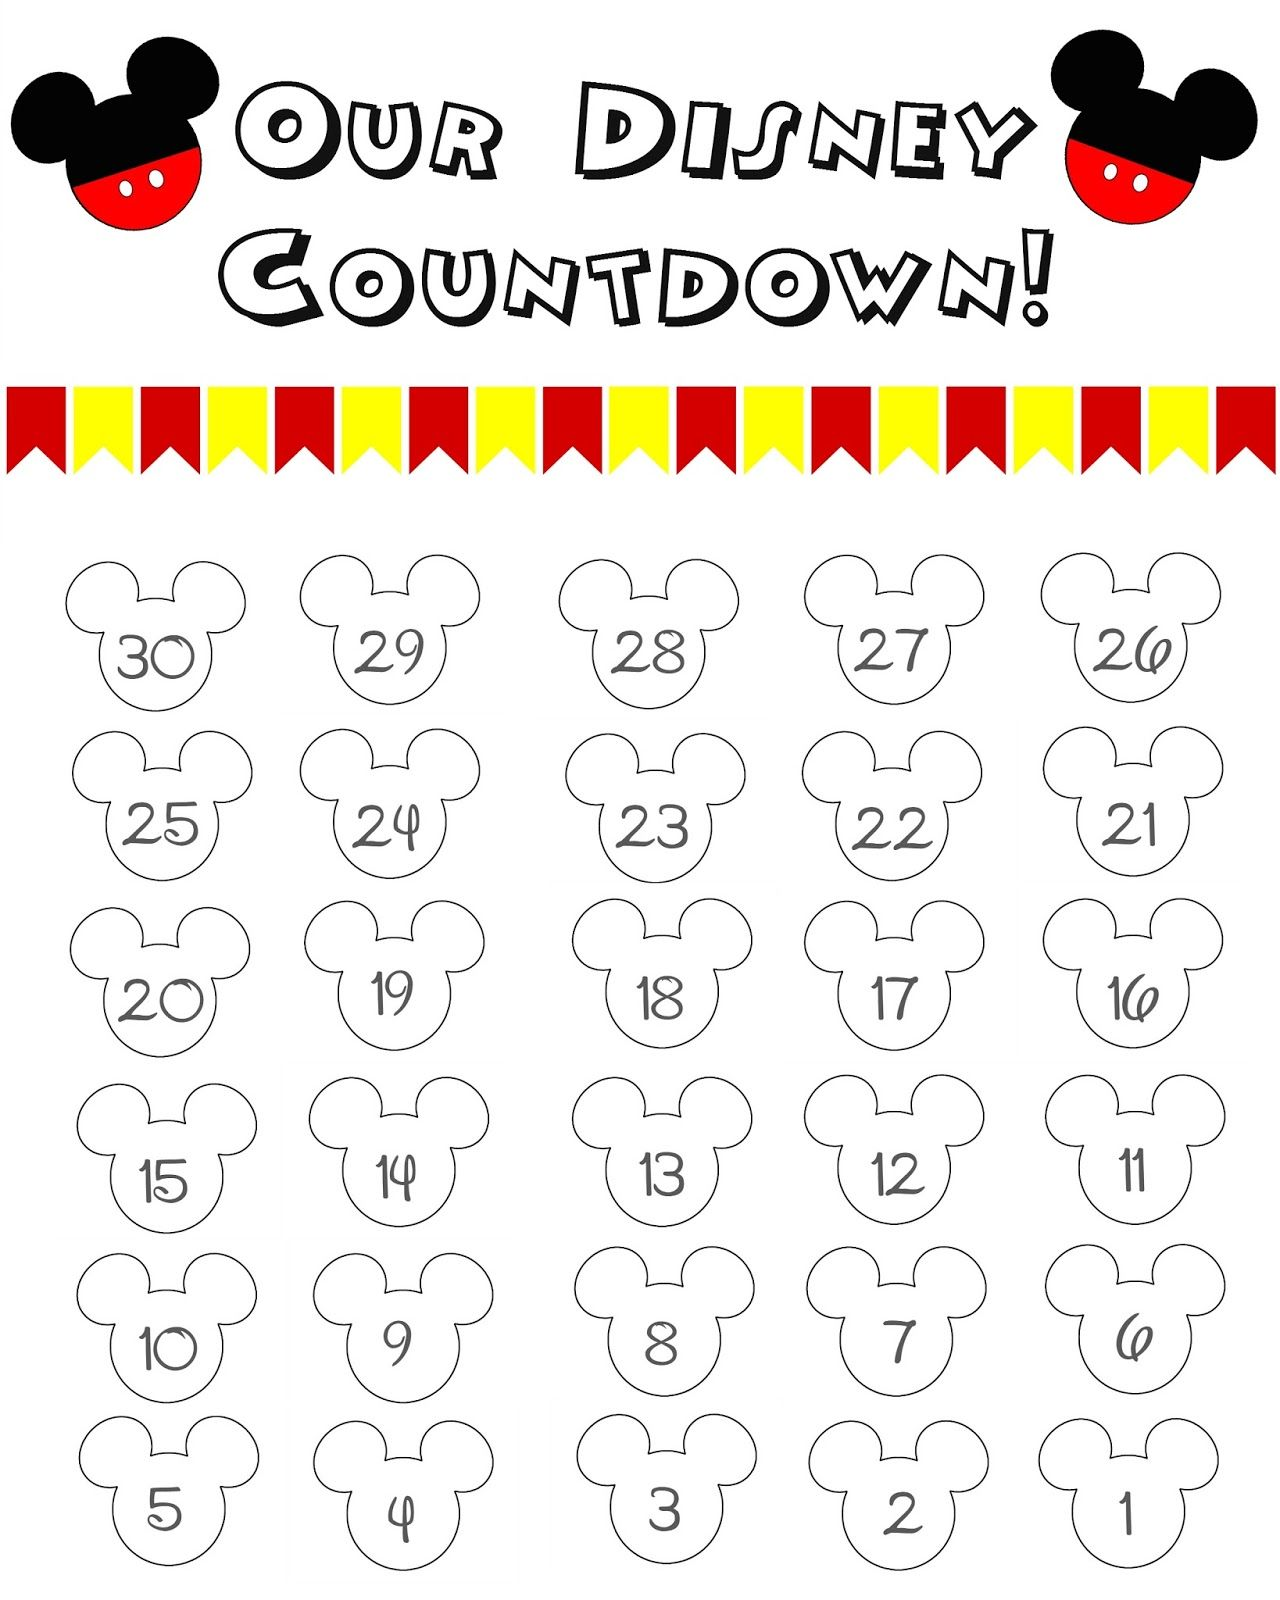 disney world countdown calendar free printable the momma diaries